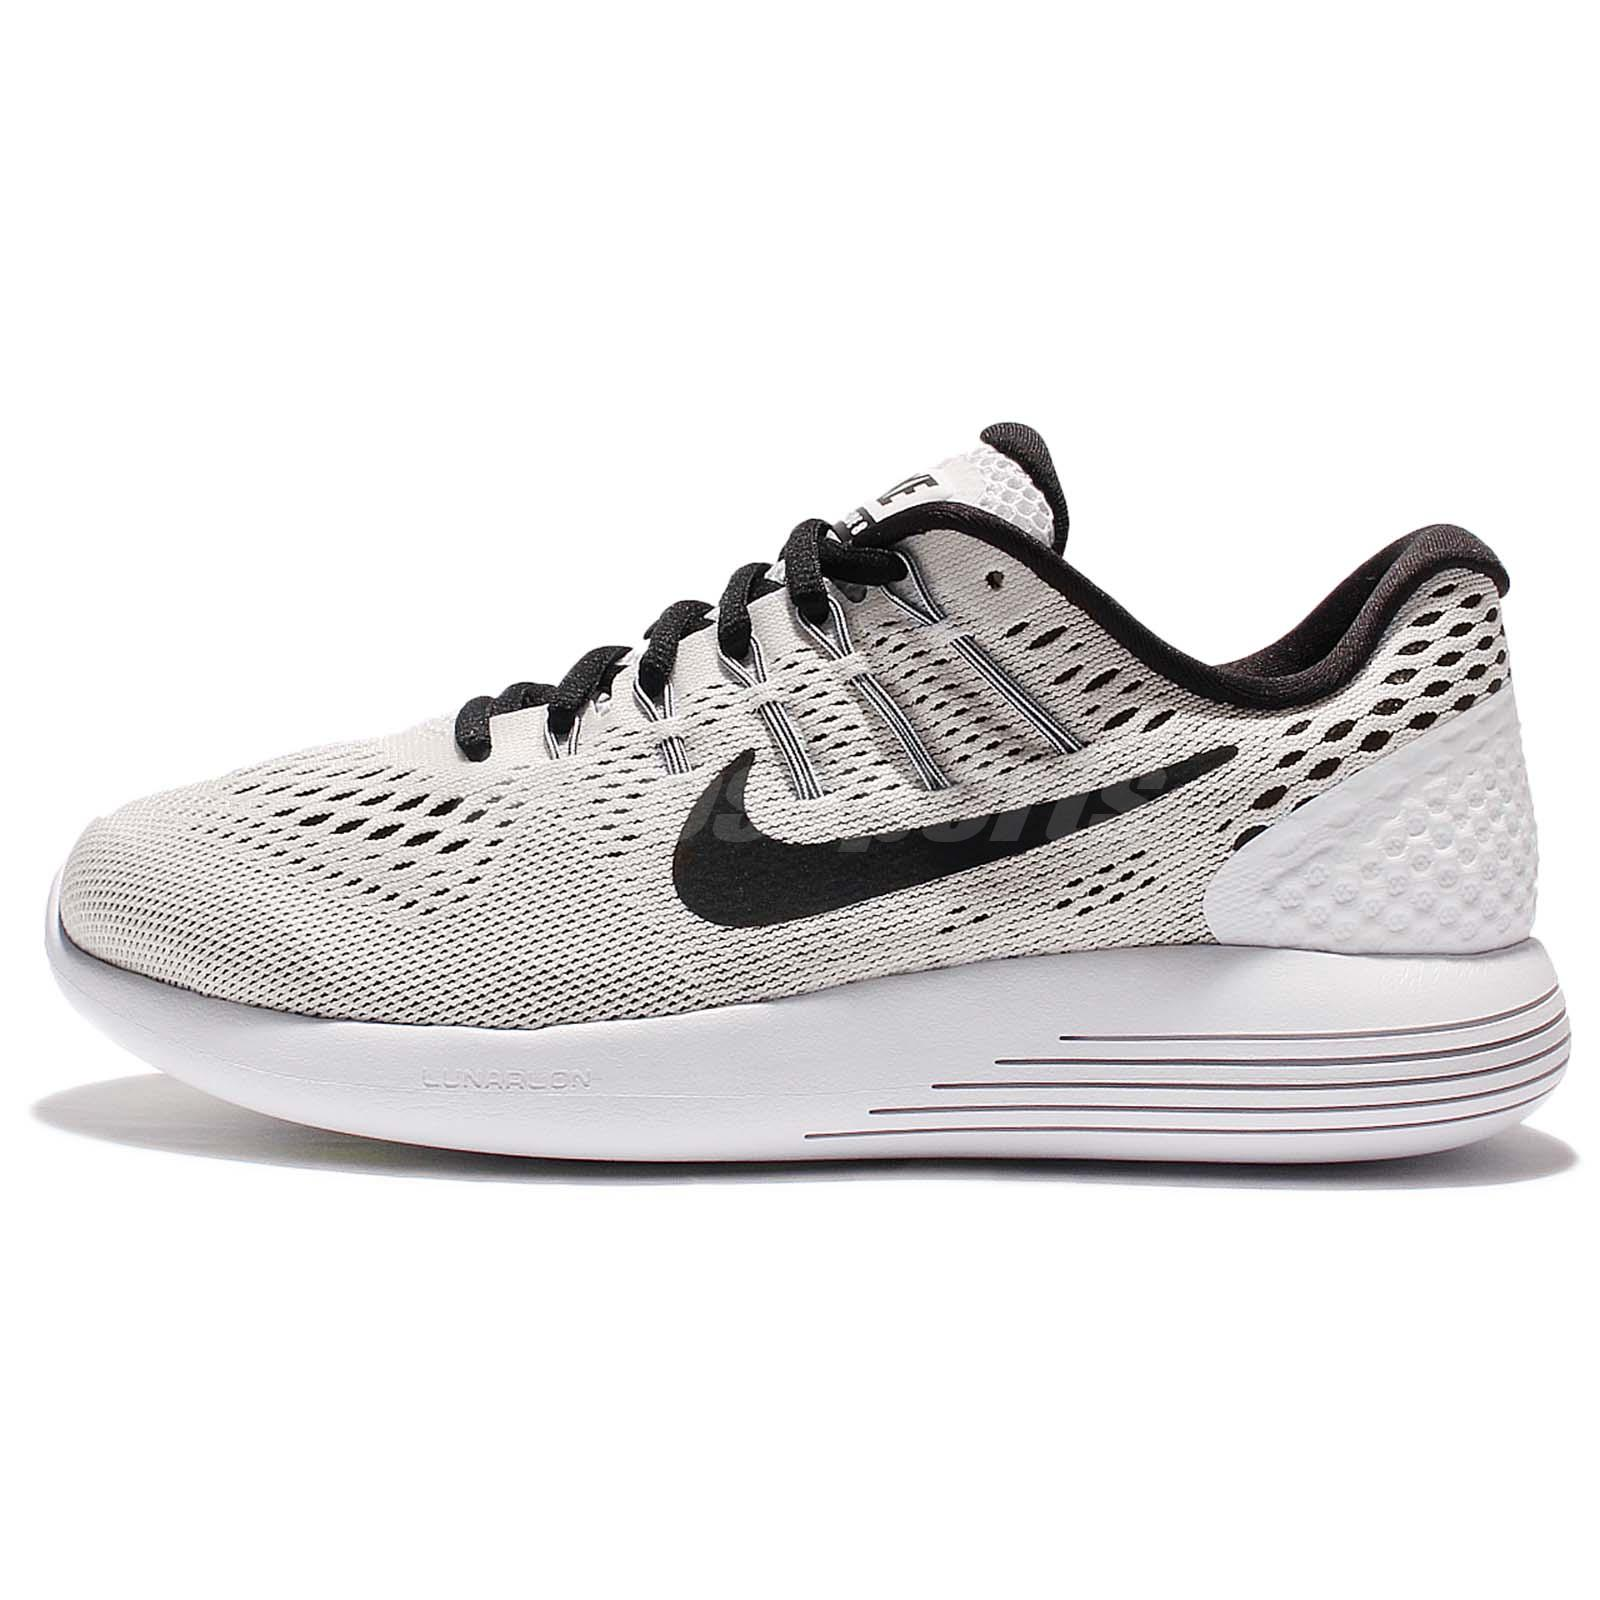 more photos 47f3e 399aa ... Wmns Nike Lunarglide 8 VIII White Black Womens Running Shoes Trainers  843726-101 ...